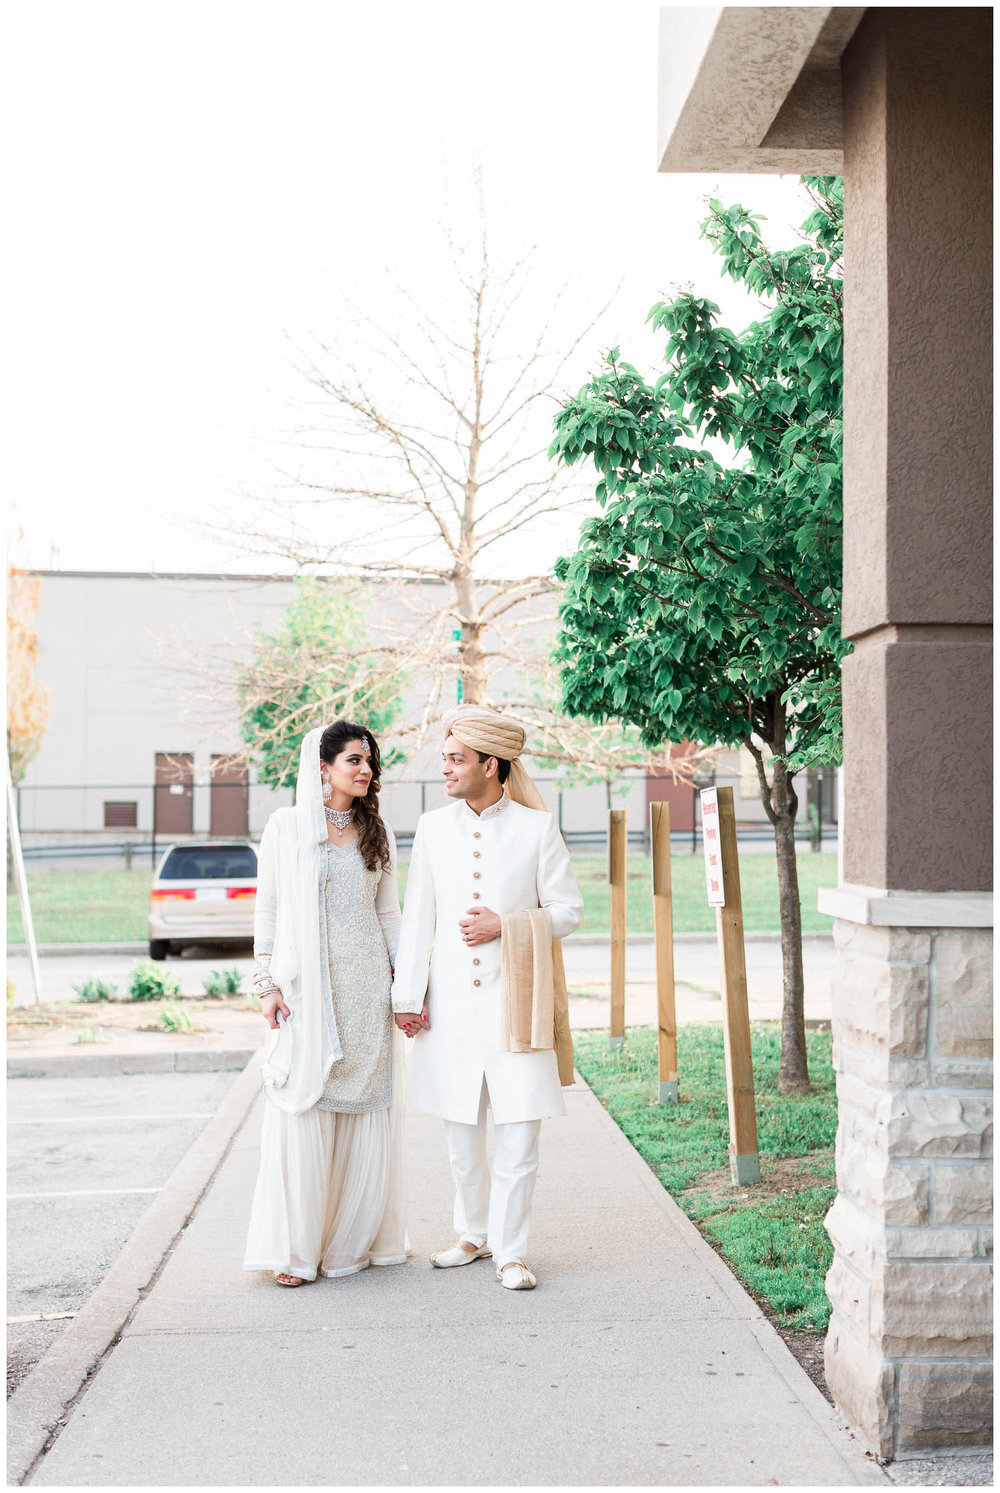 Nikkah-ISNA-Toronto-Mississauga-GTA-Pakistani-Muslim-Female-Wedding-Photographer_0012.jpg